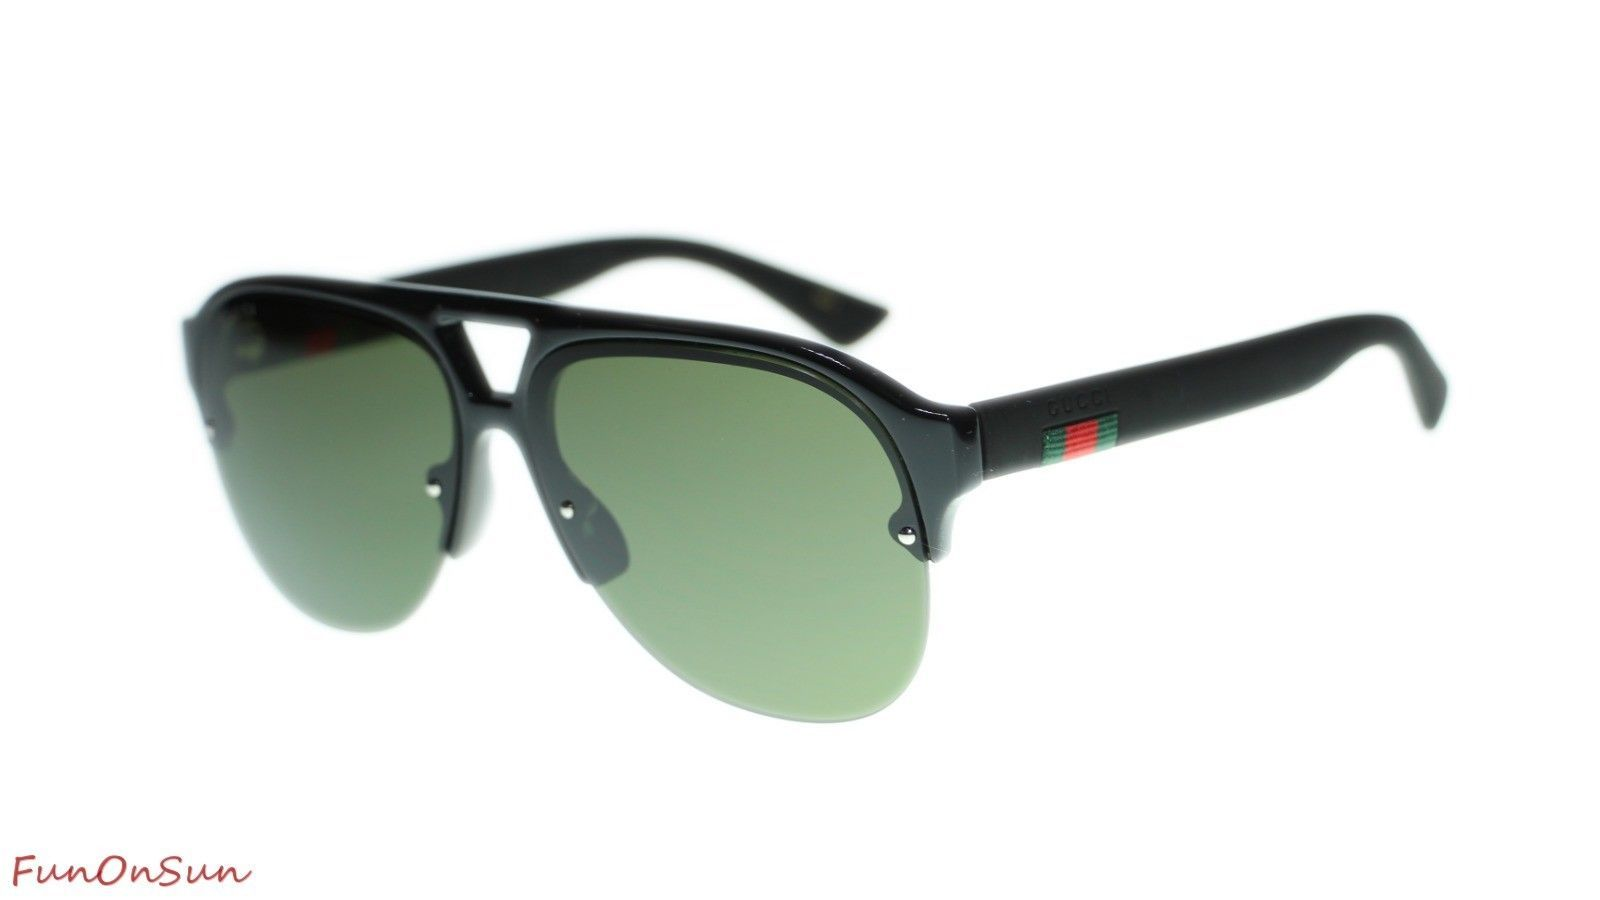 1fa9db3ca78 10. 10. Previous. NEW Gucci Men Sunglasses GG0170S 001 Black Green Lens  Pilot 59mm Authentic